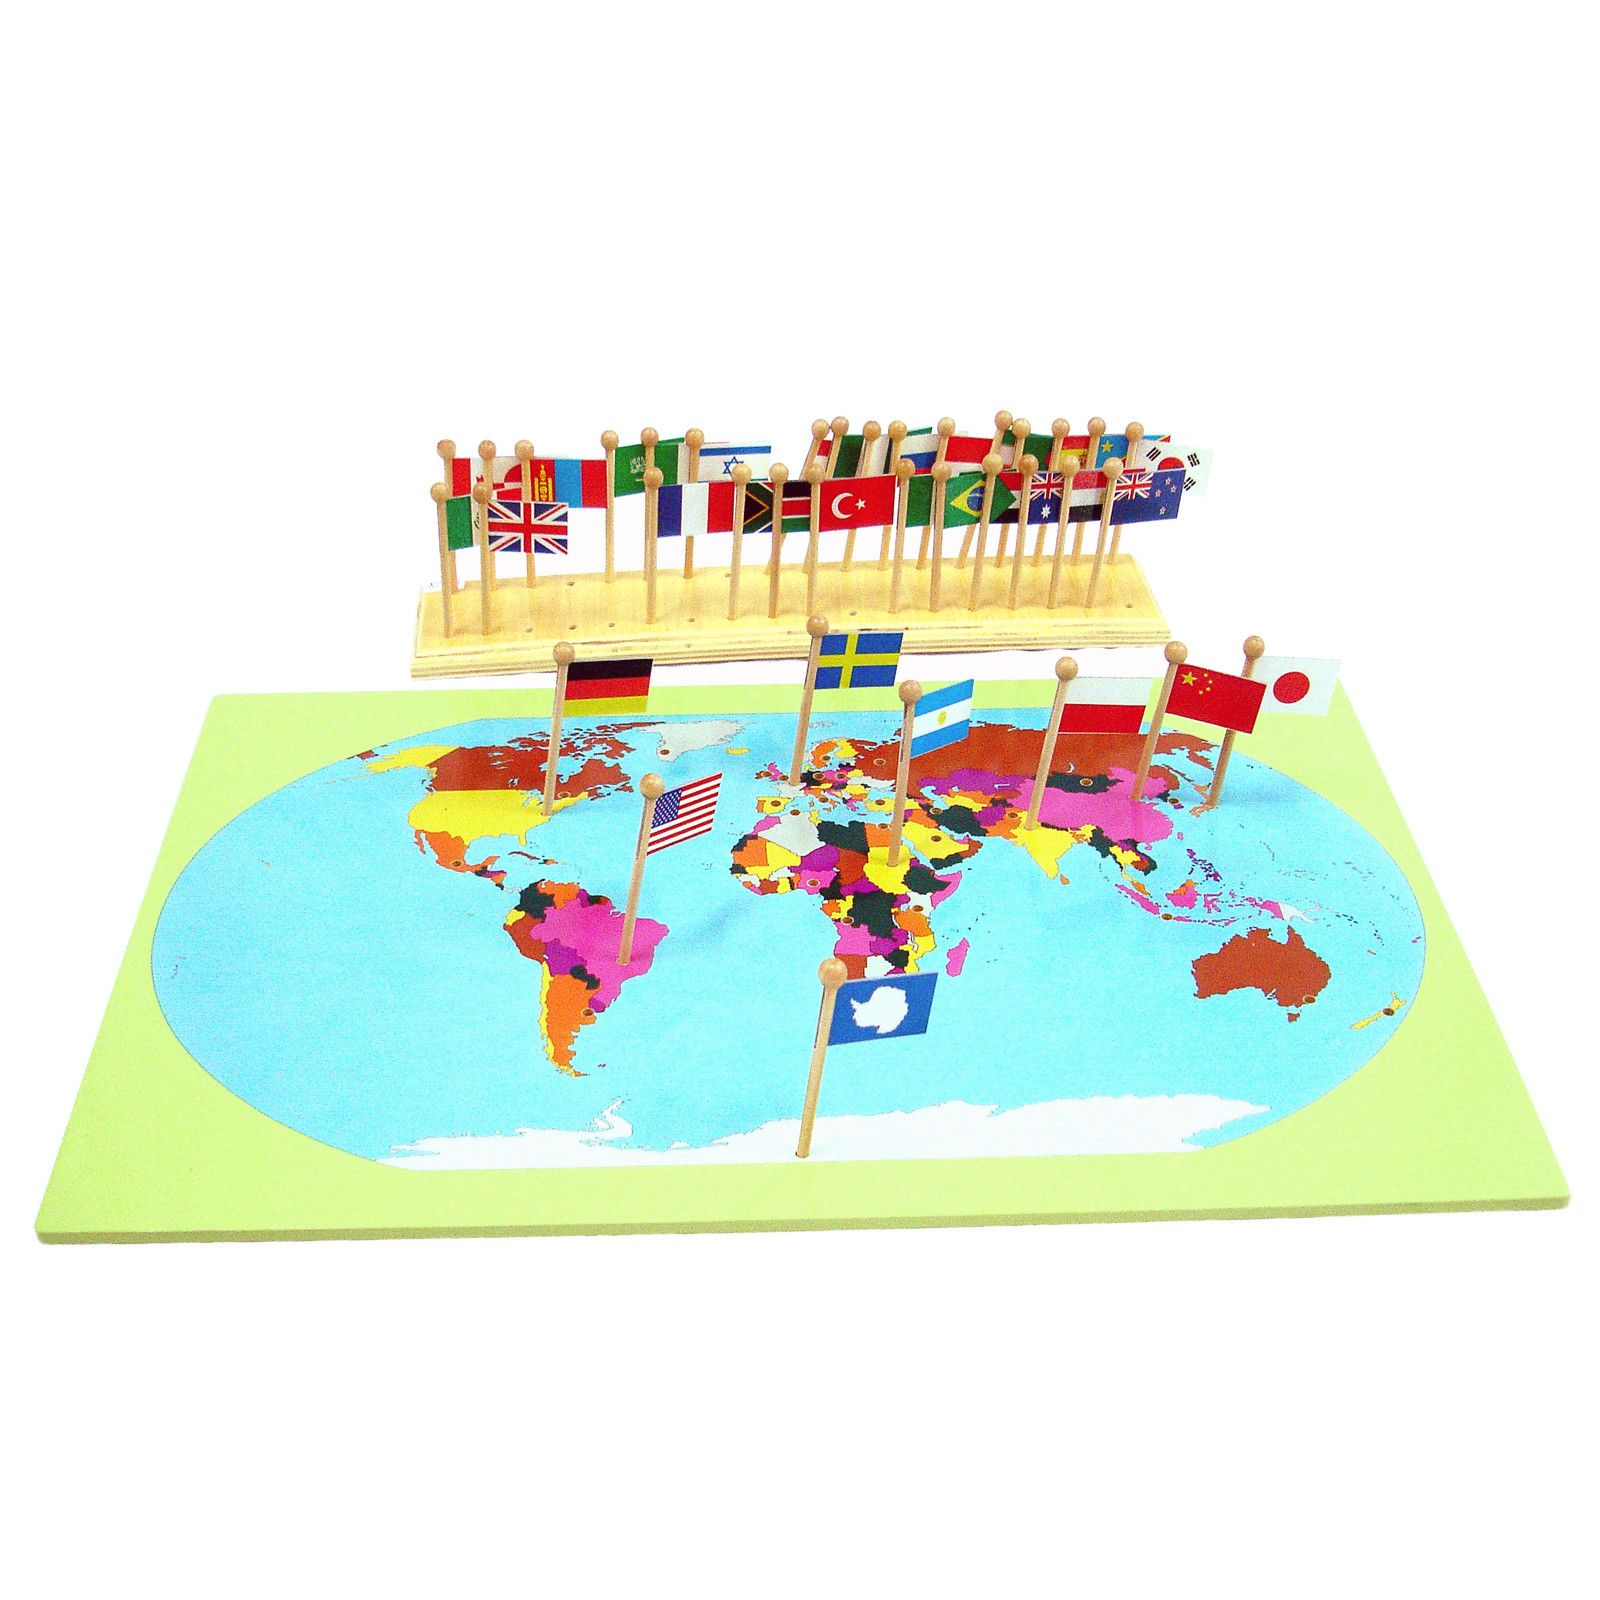 Flag stand world map with flags from montessori shop schooling flag stand world map with flags from montessori shop gumiabroncs Images